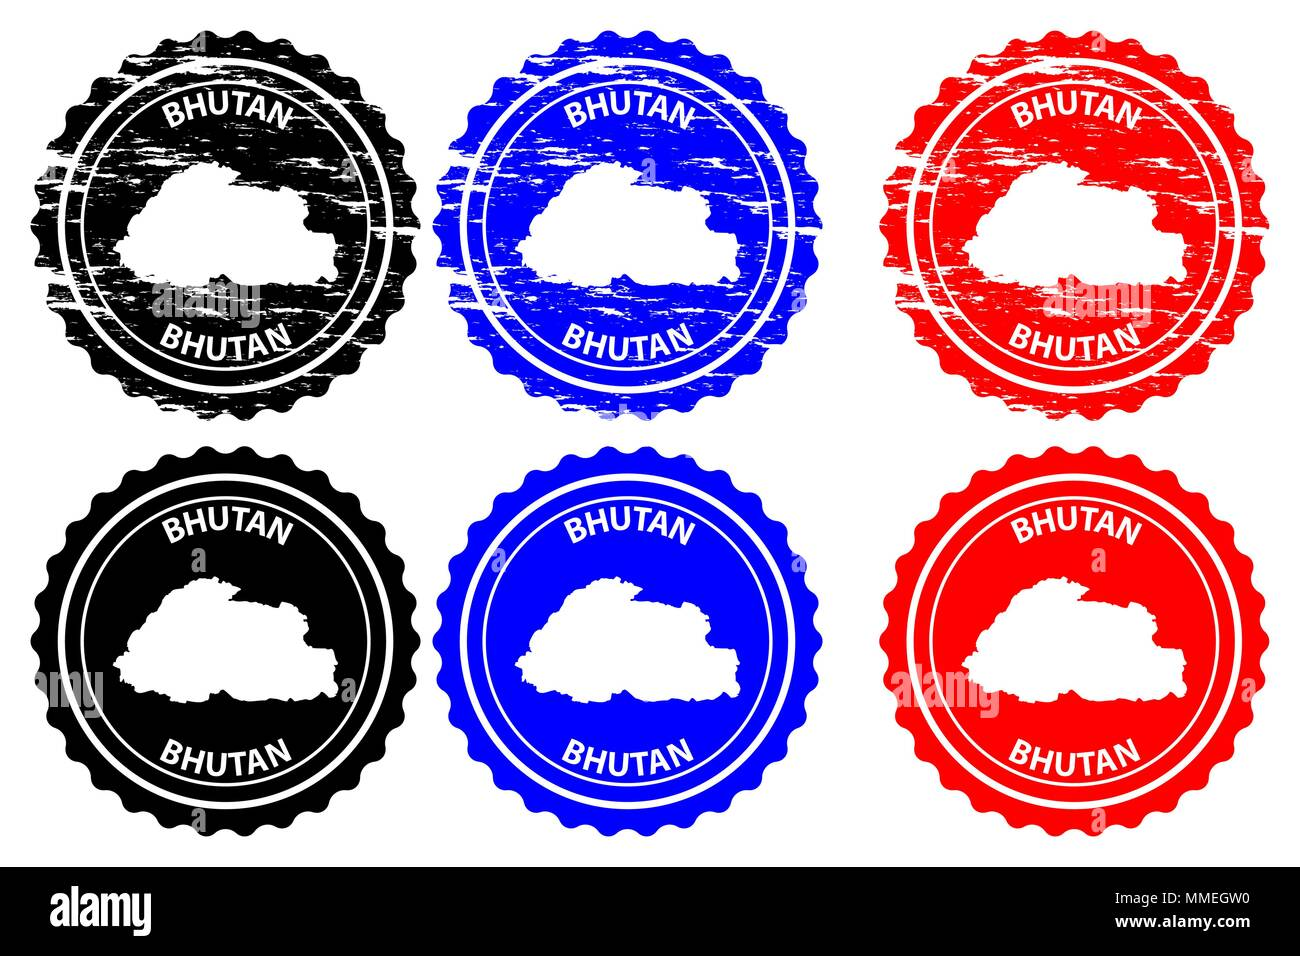 Bhutan - rubber stamp - vector, Kingdom of Bhutan map pattern - sticker - black, blue and red - Stock Vector